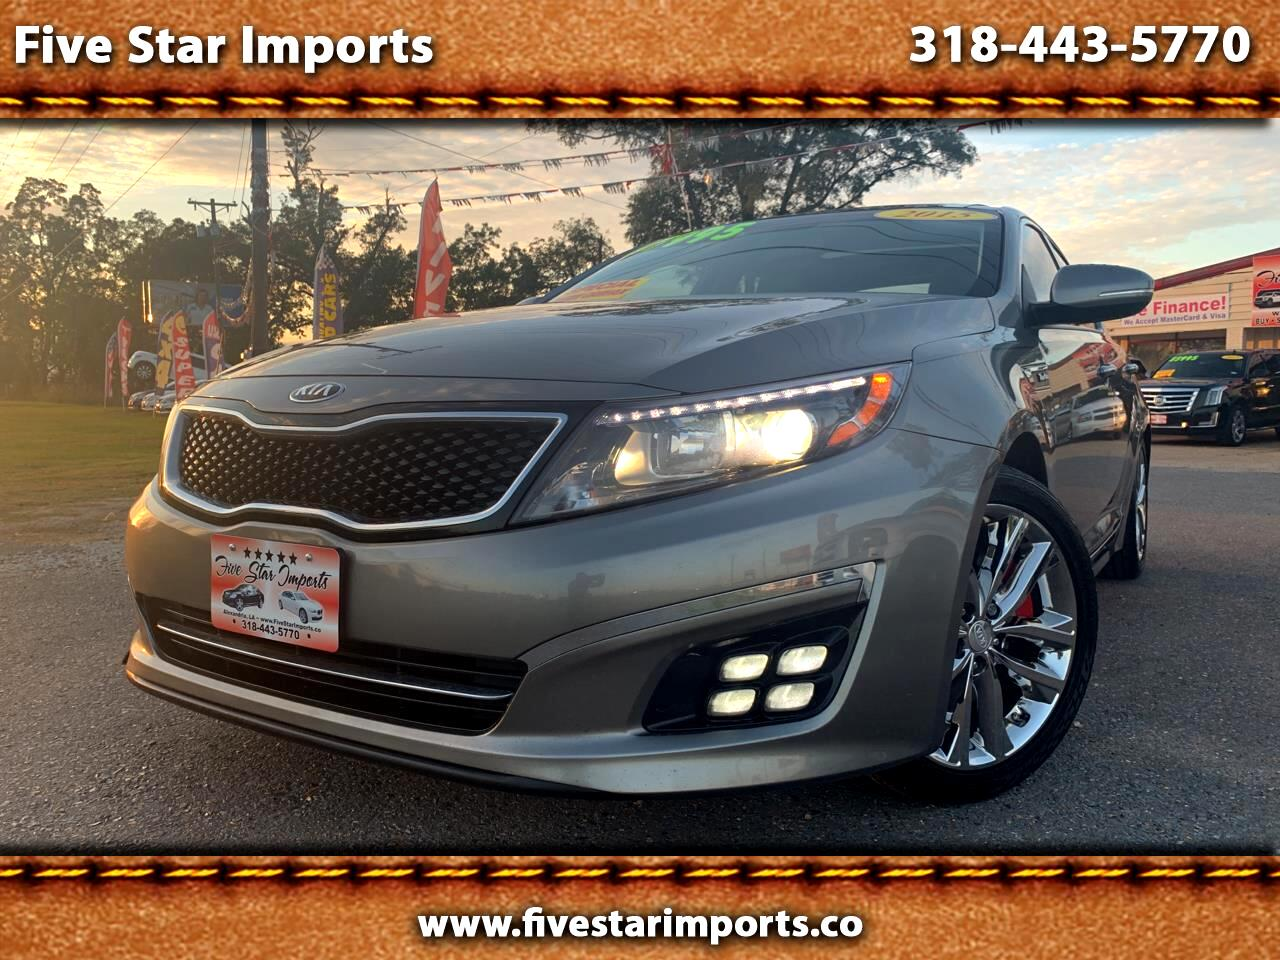 Kia Optima 4dr Sdn SXL Turbo 2015